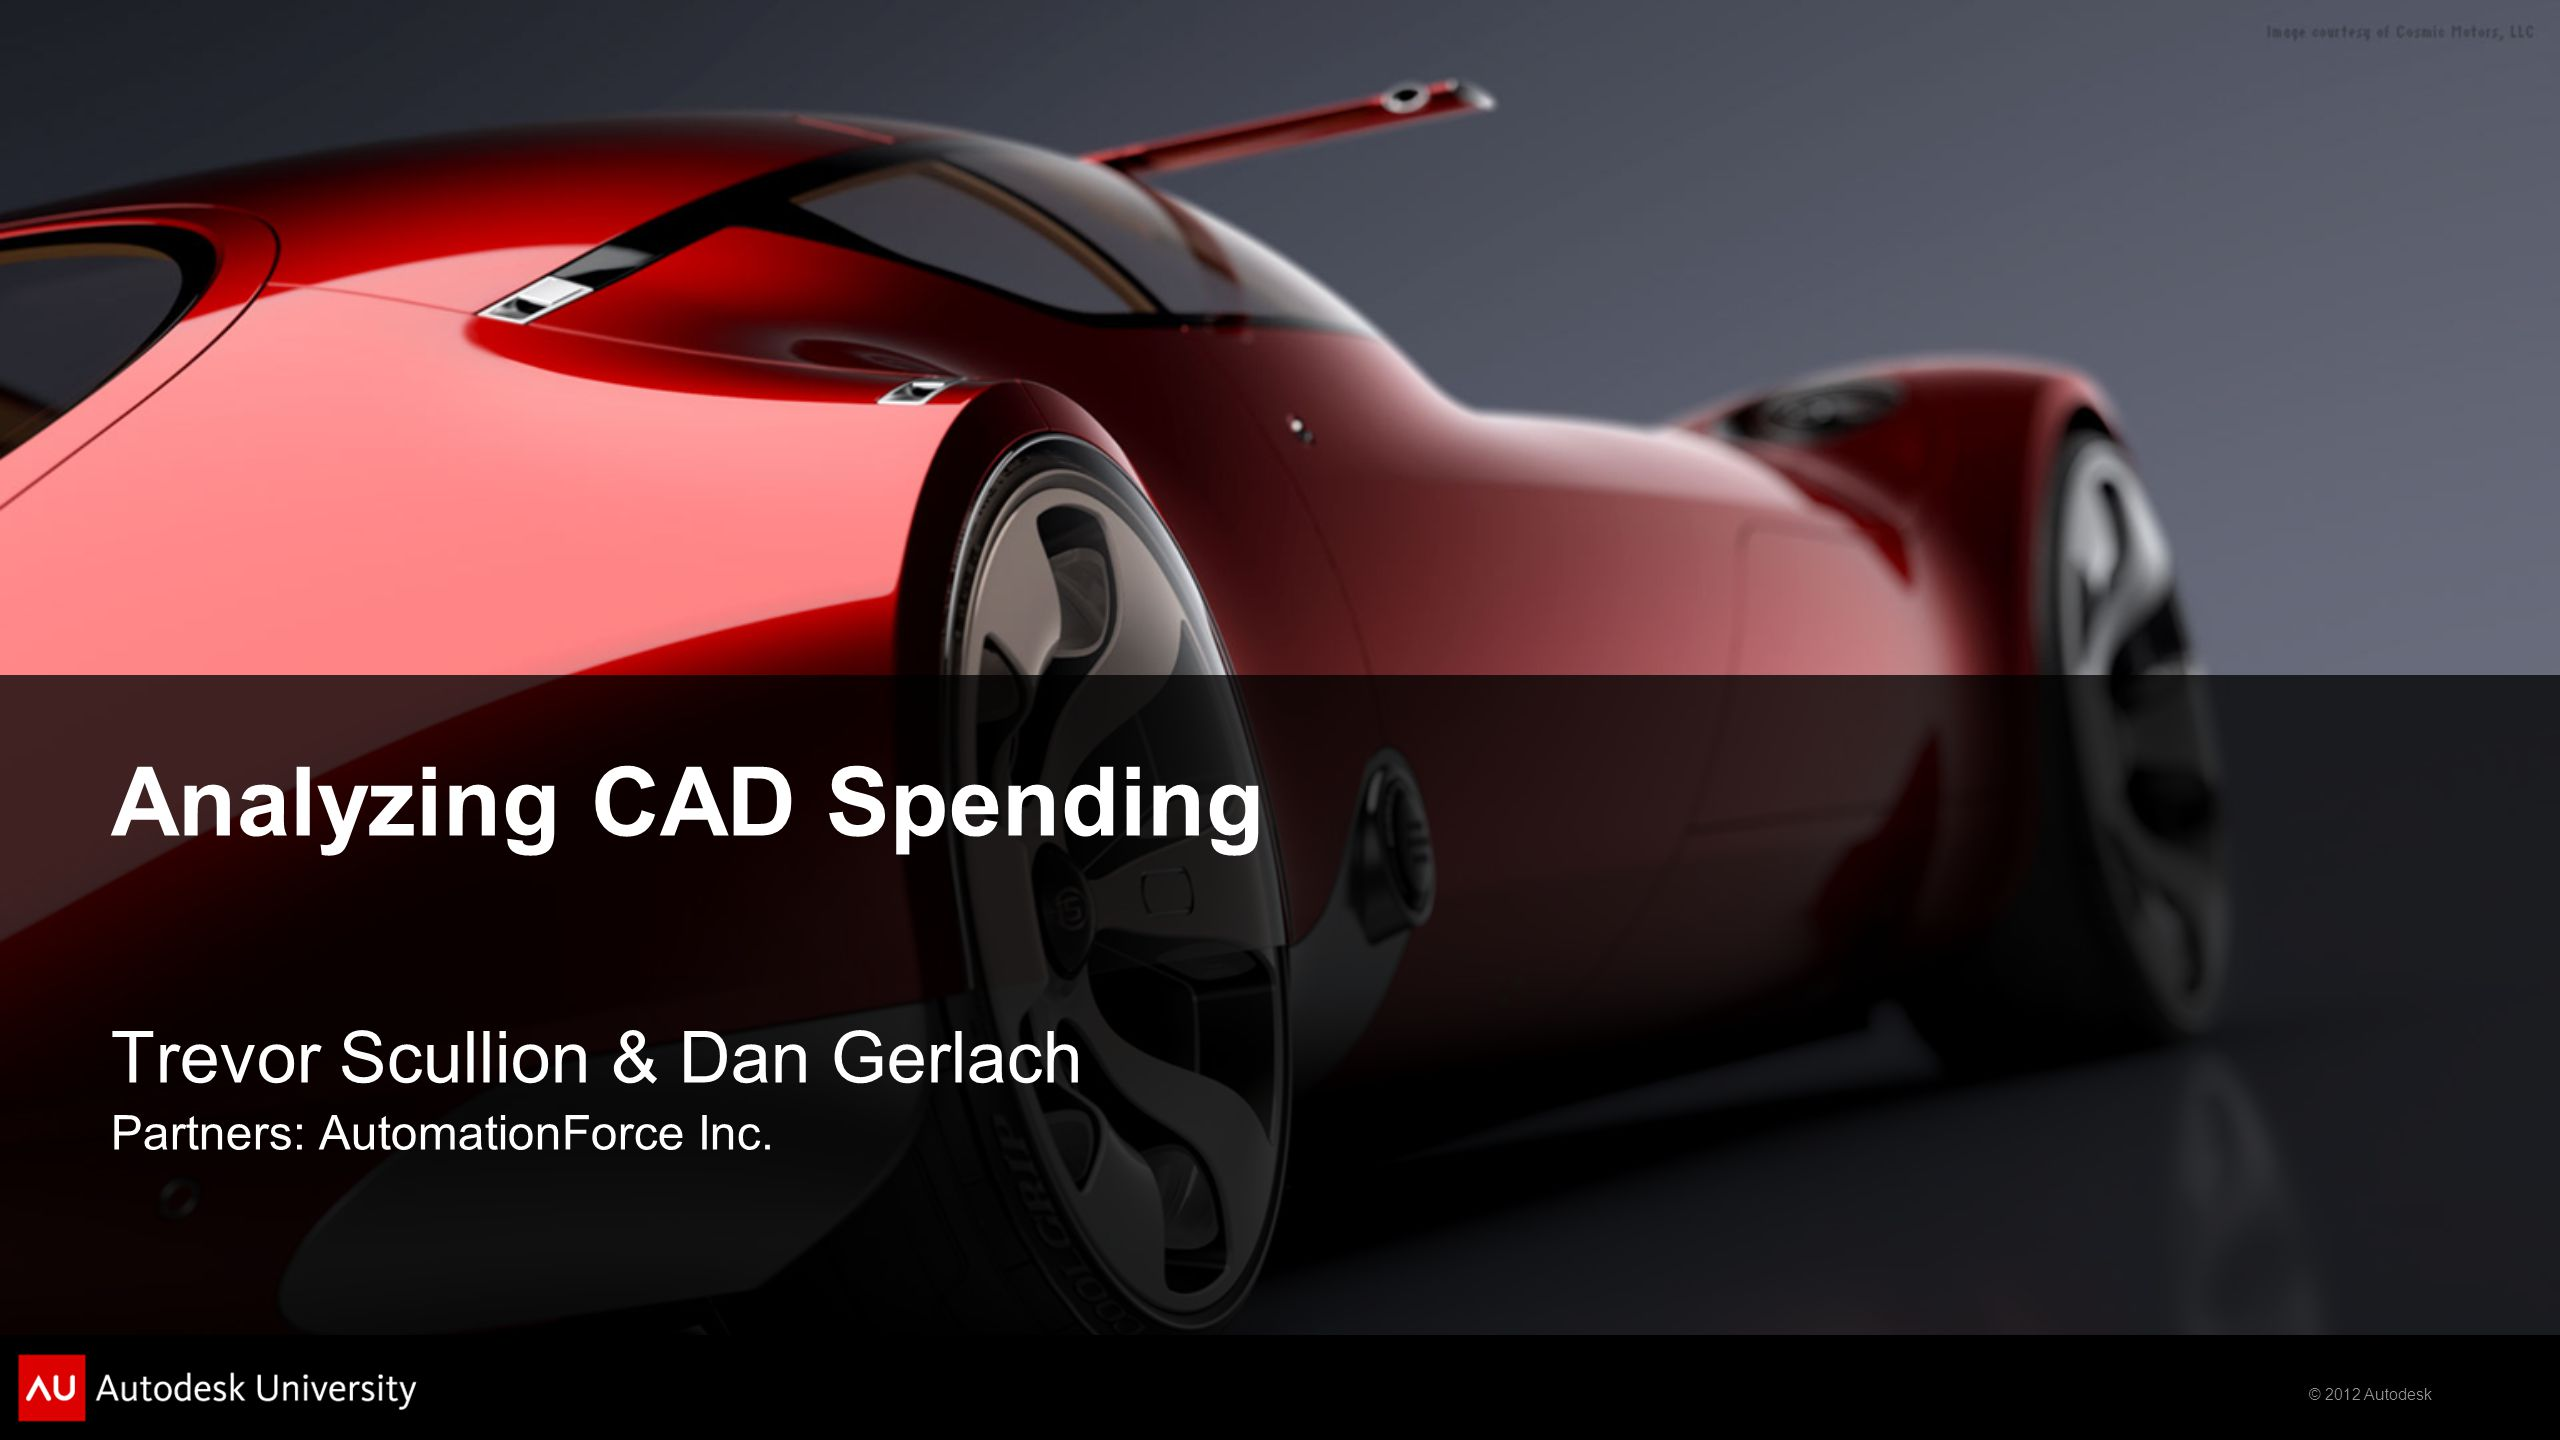 Analyzing CAD Spending